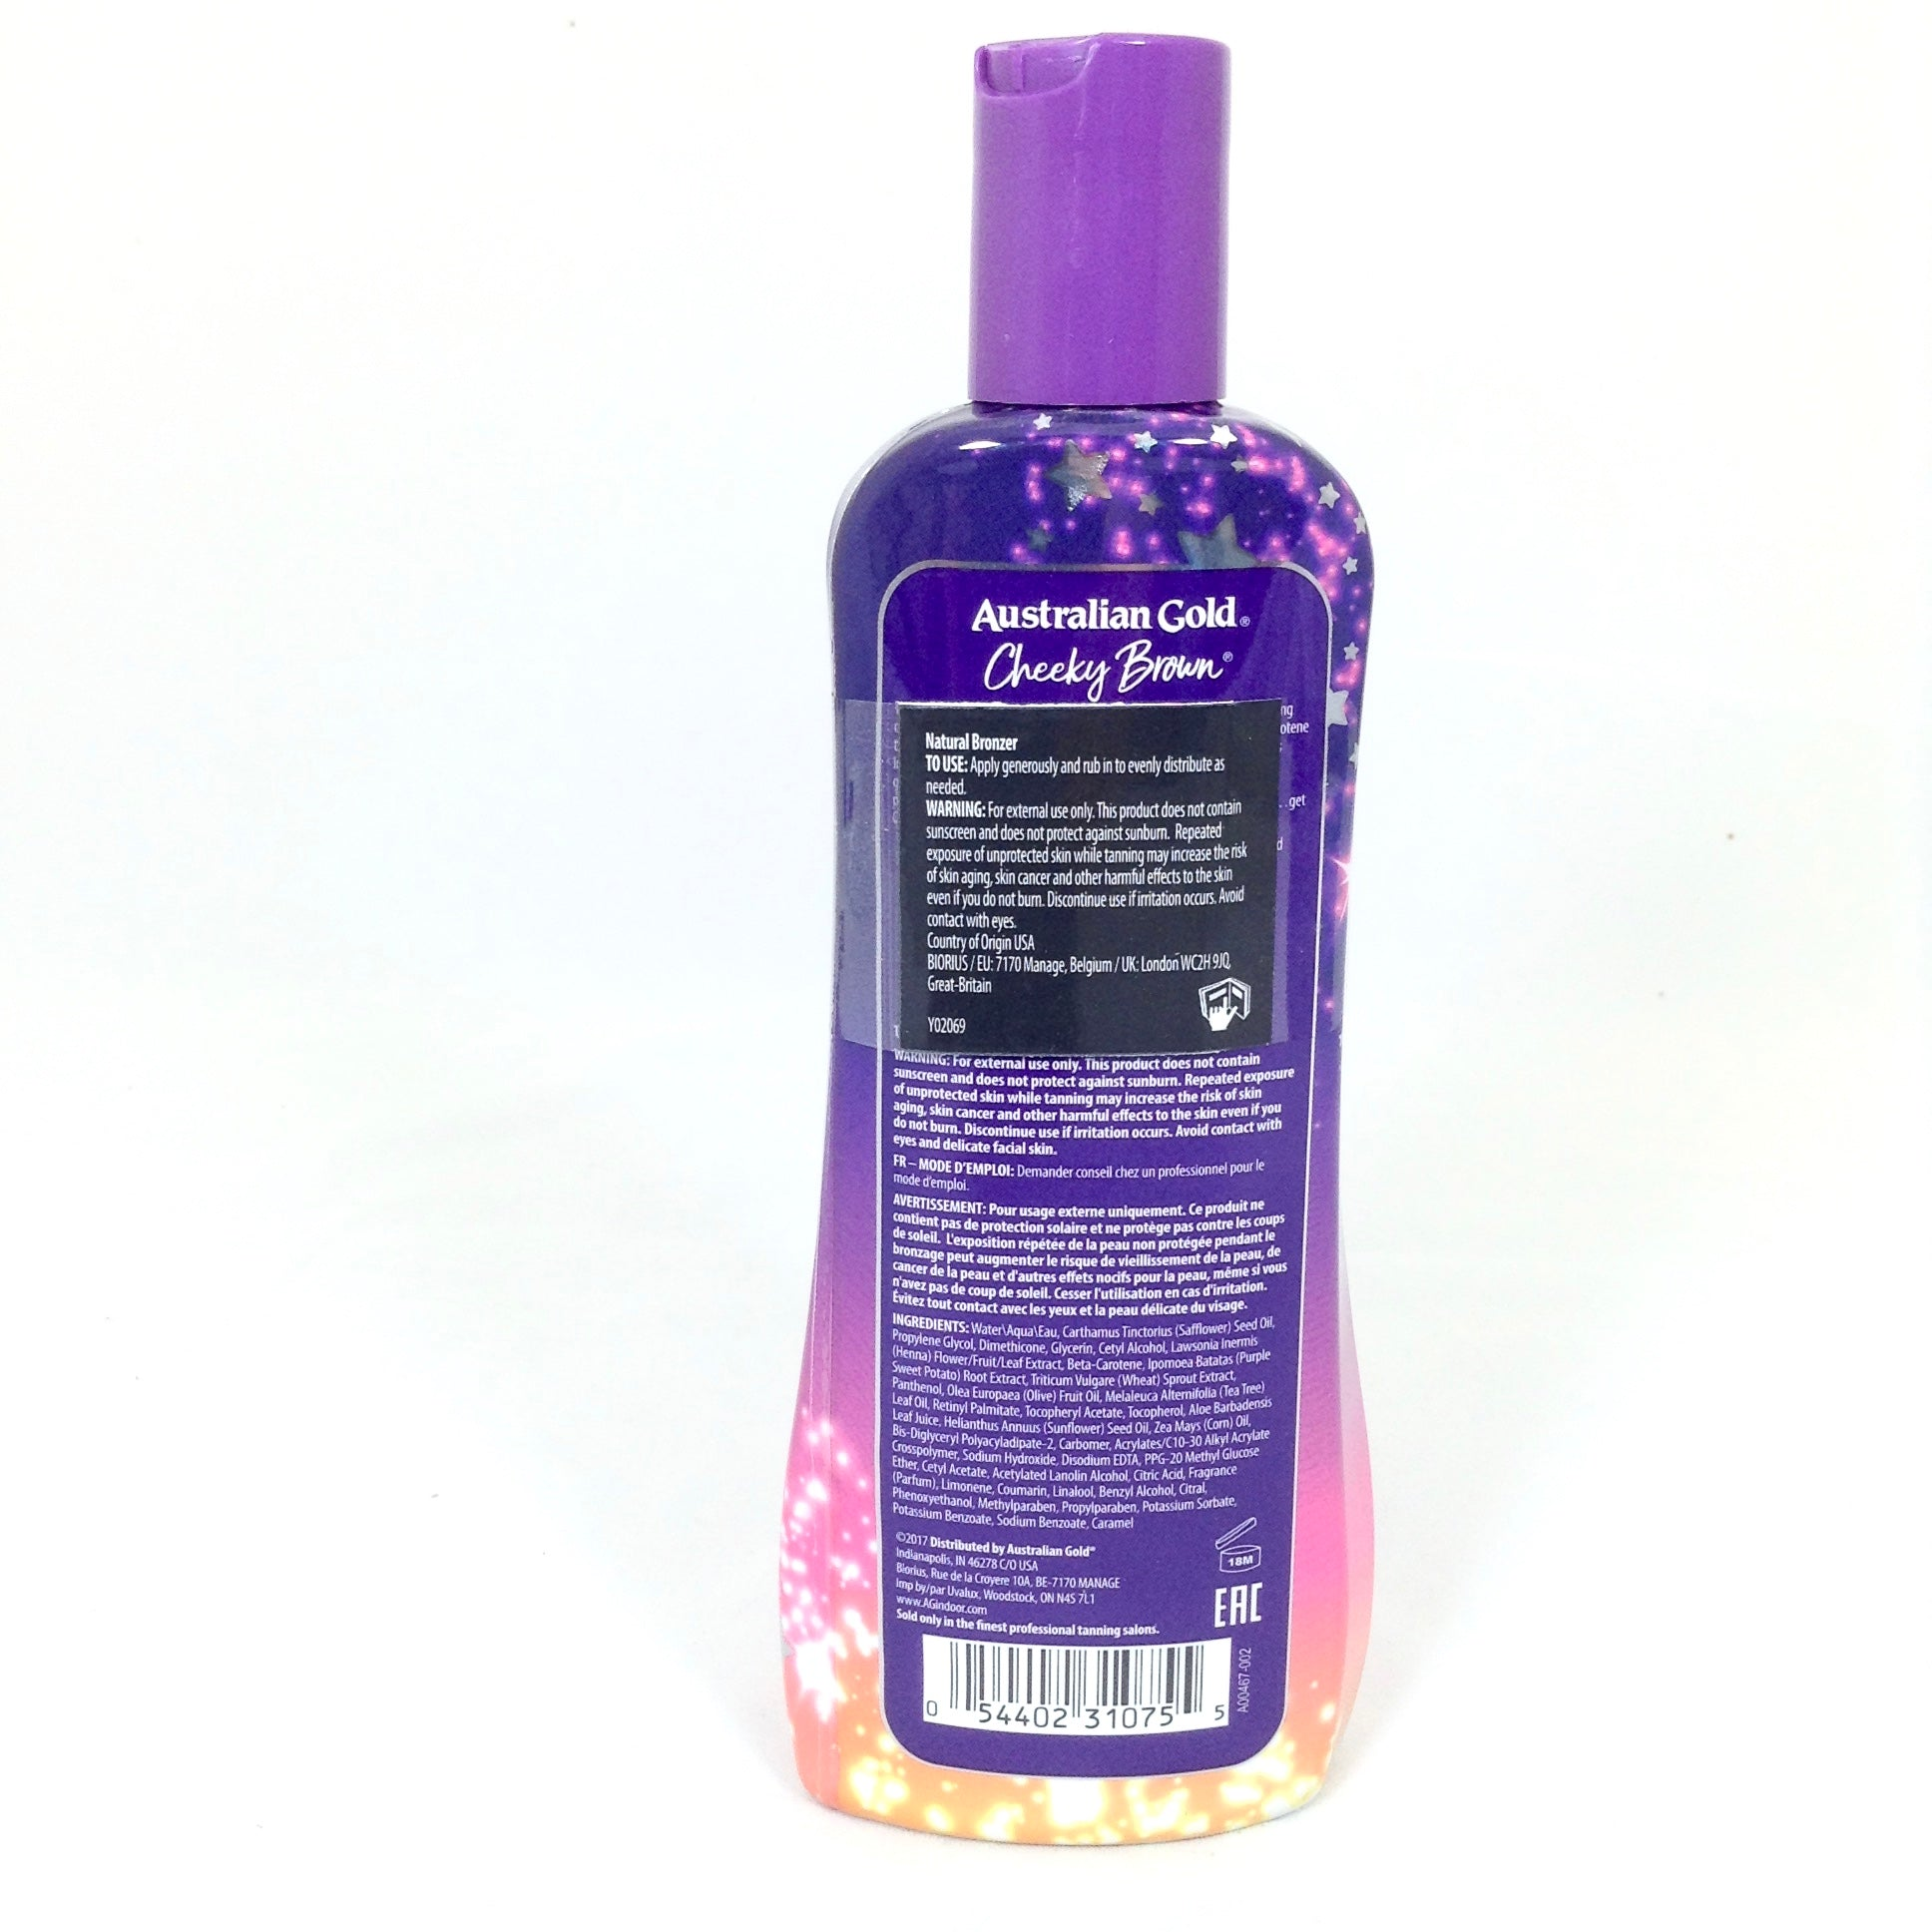 Australian Gold Cheeky Brown immediate bronzer tanning lotion